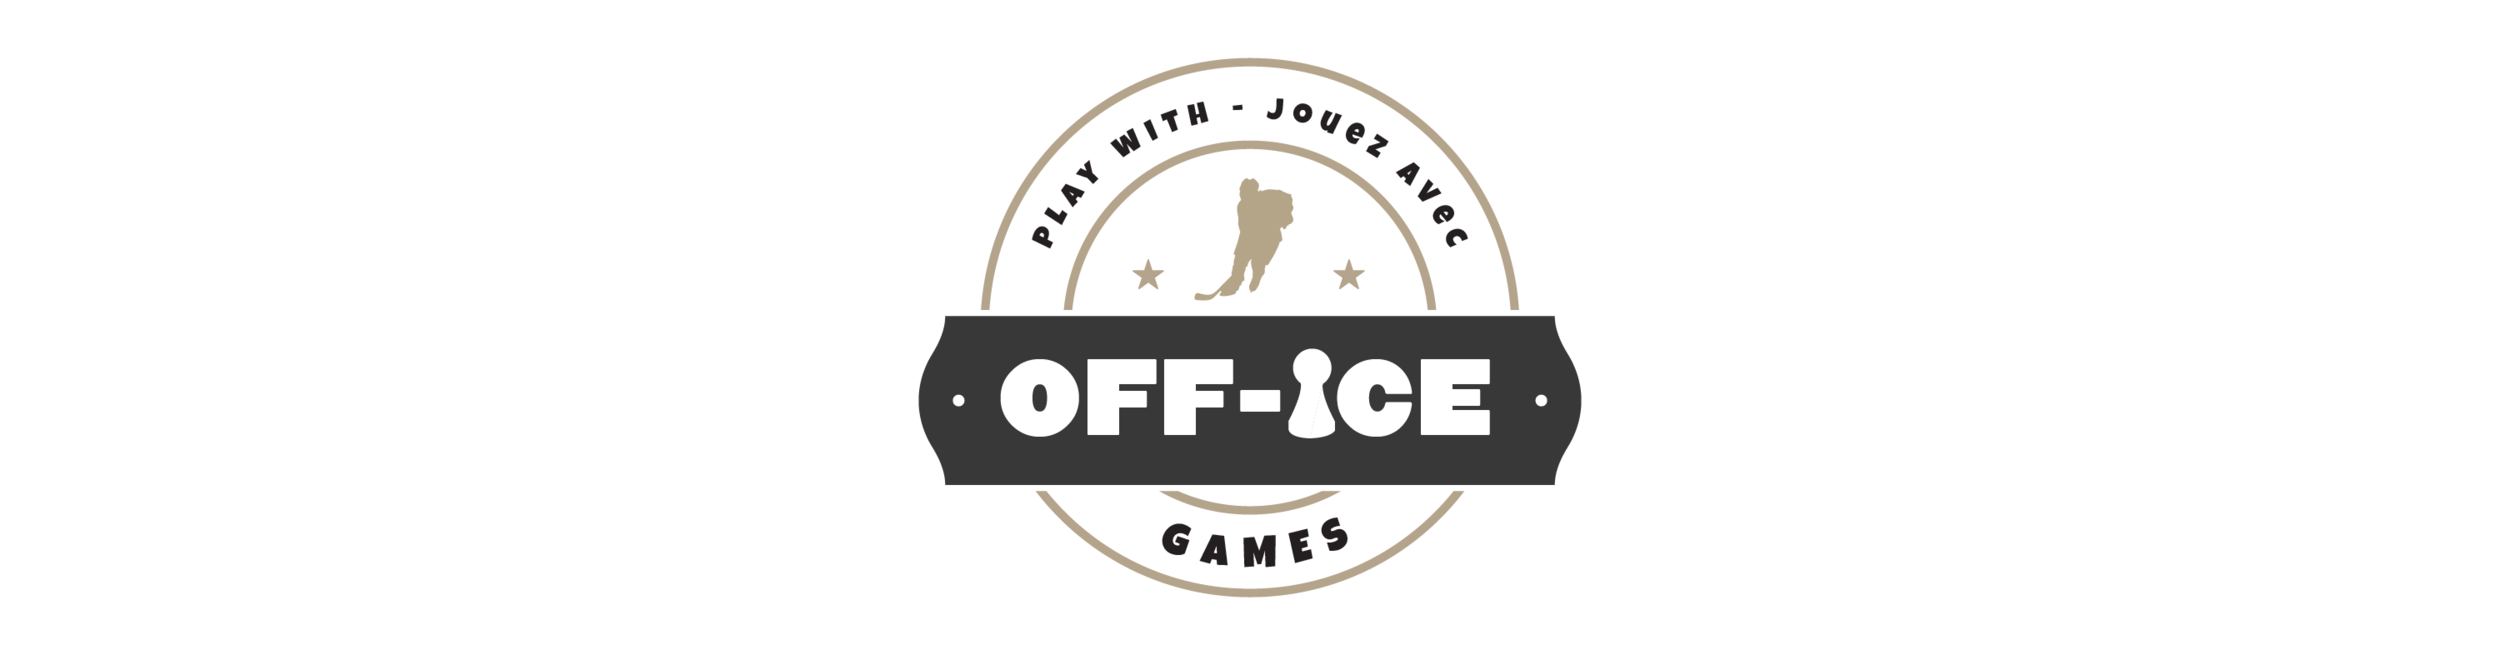 Off-Ice games